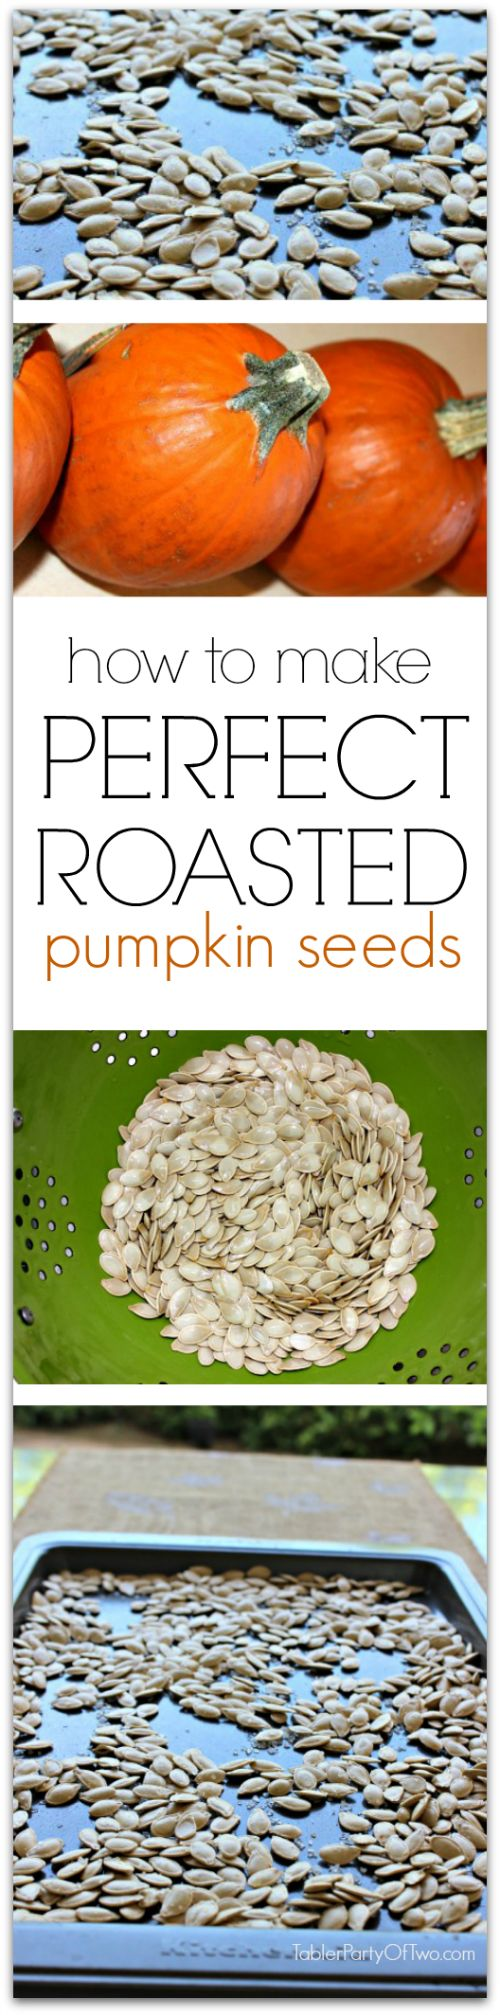 How to make PERFECT roasted pumpkin seeds every time! So good and so good for you.